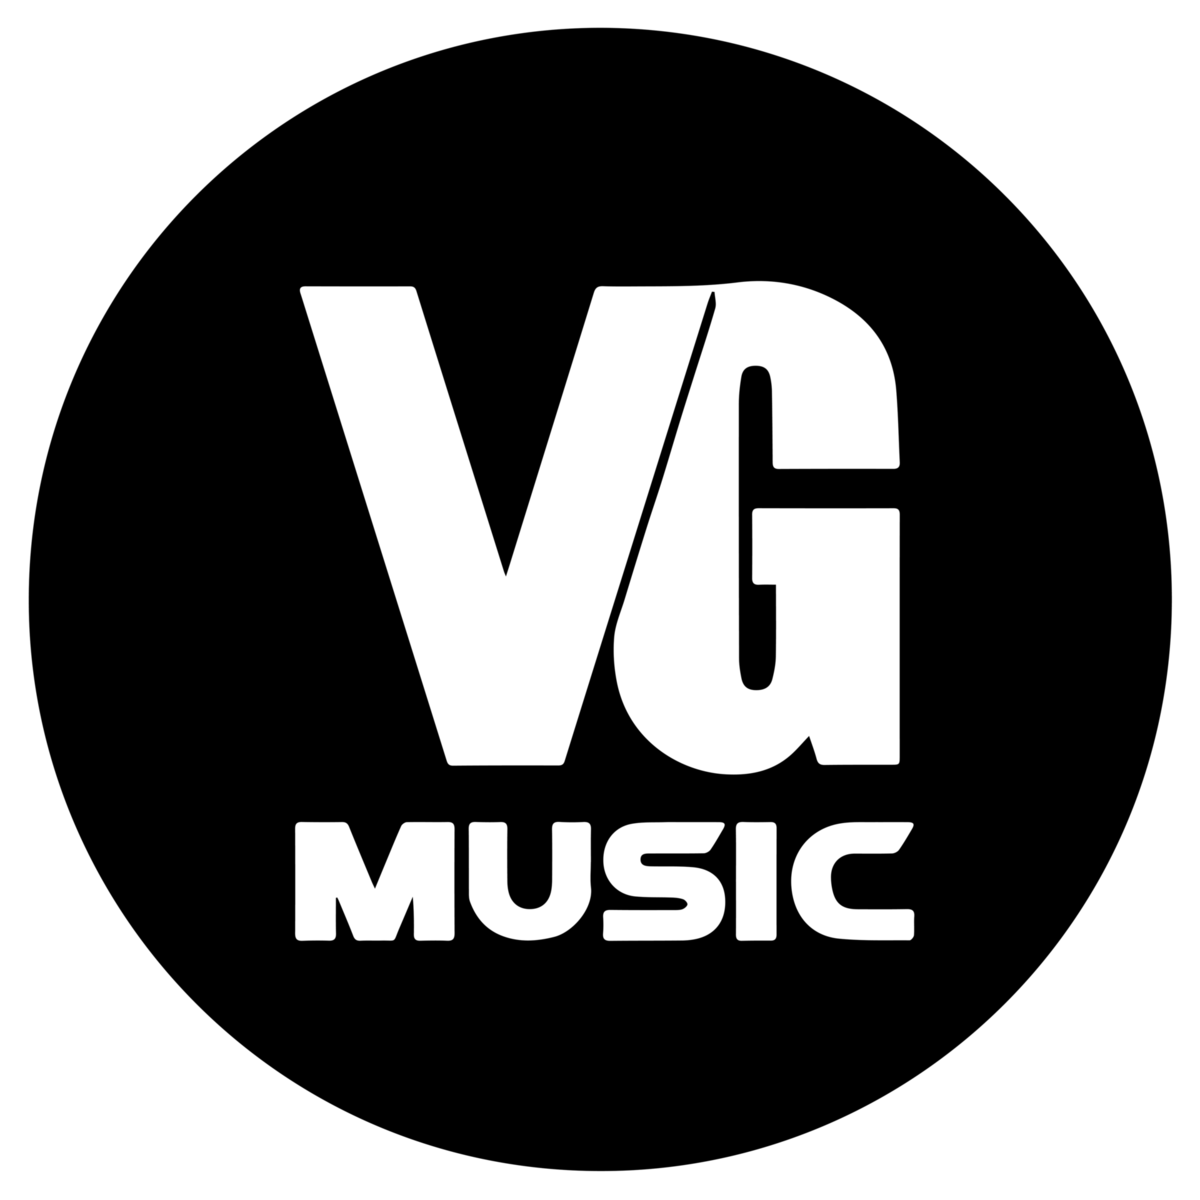 VG MUSIC LABEL